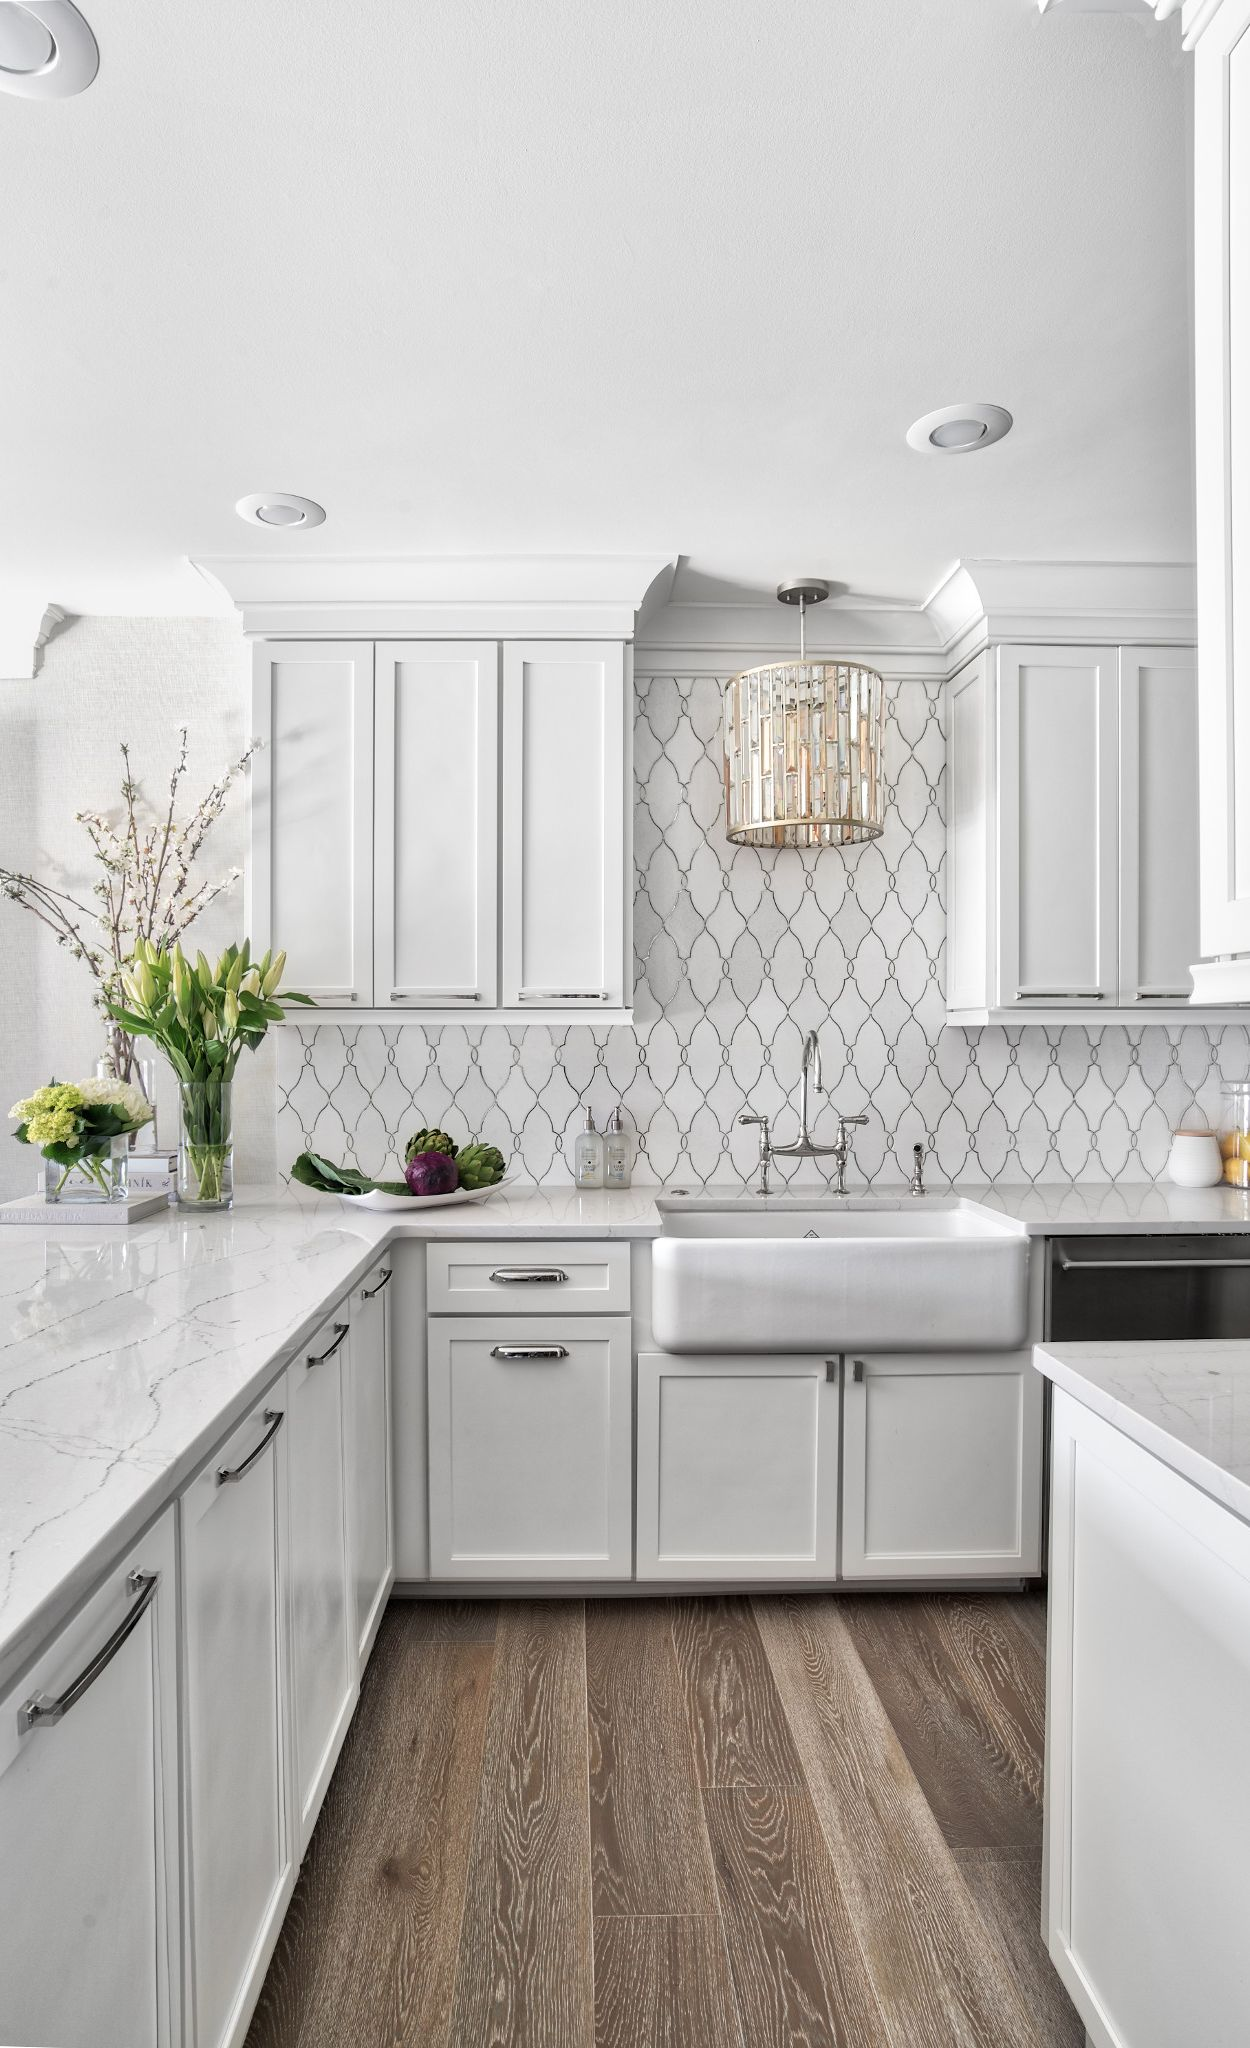 An elegant pairing of Ella™ countertops and tile backsplash.